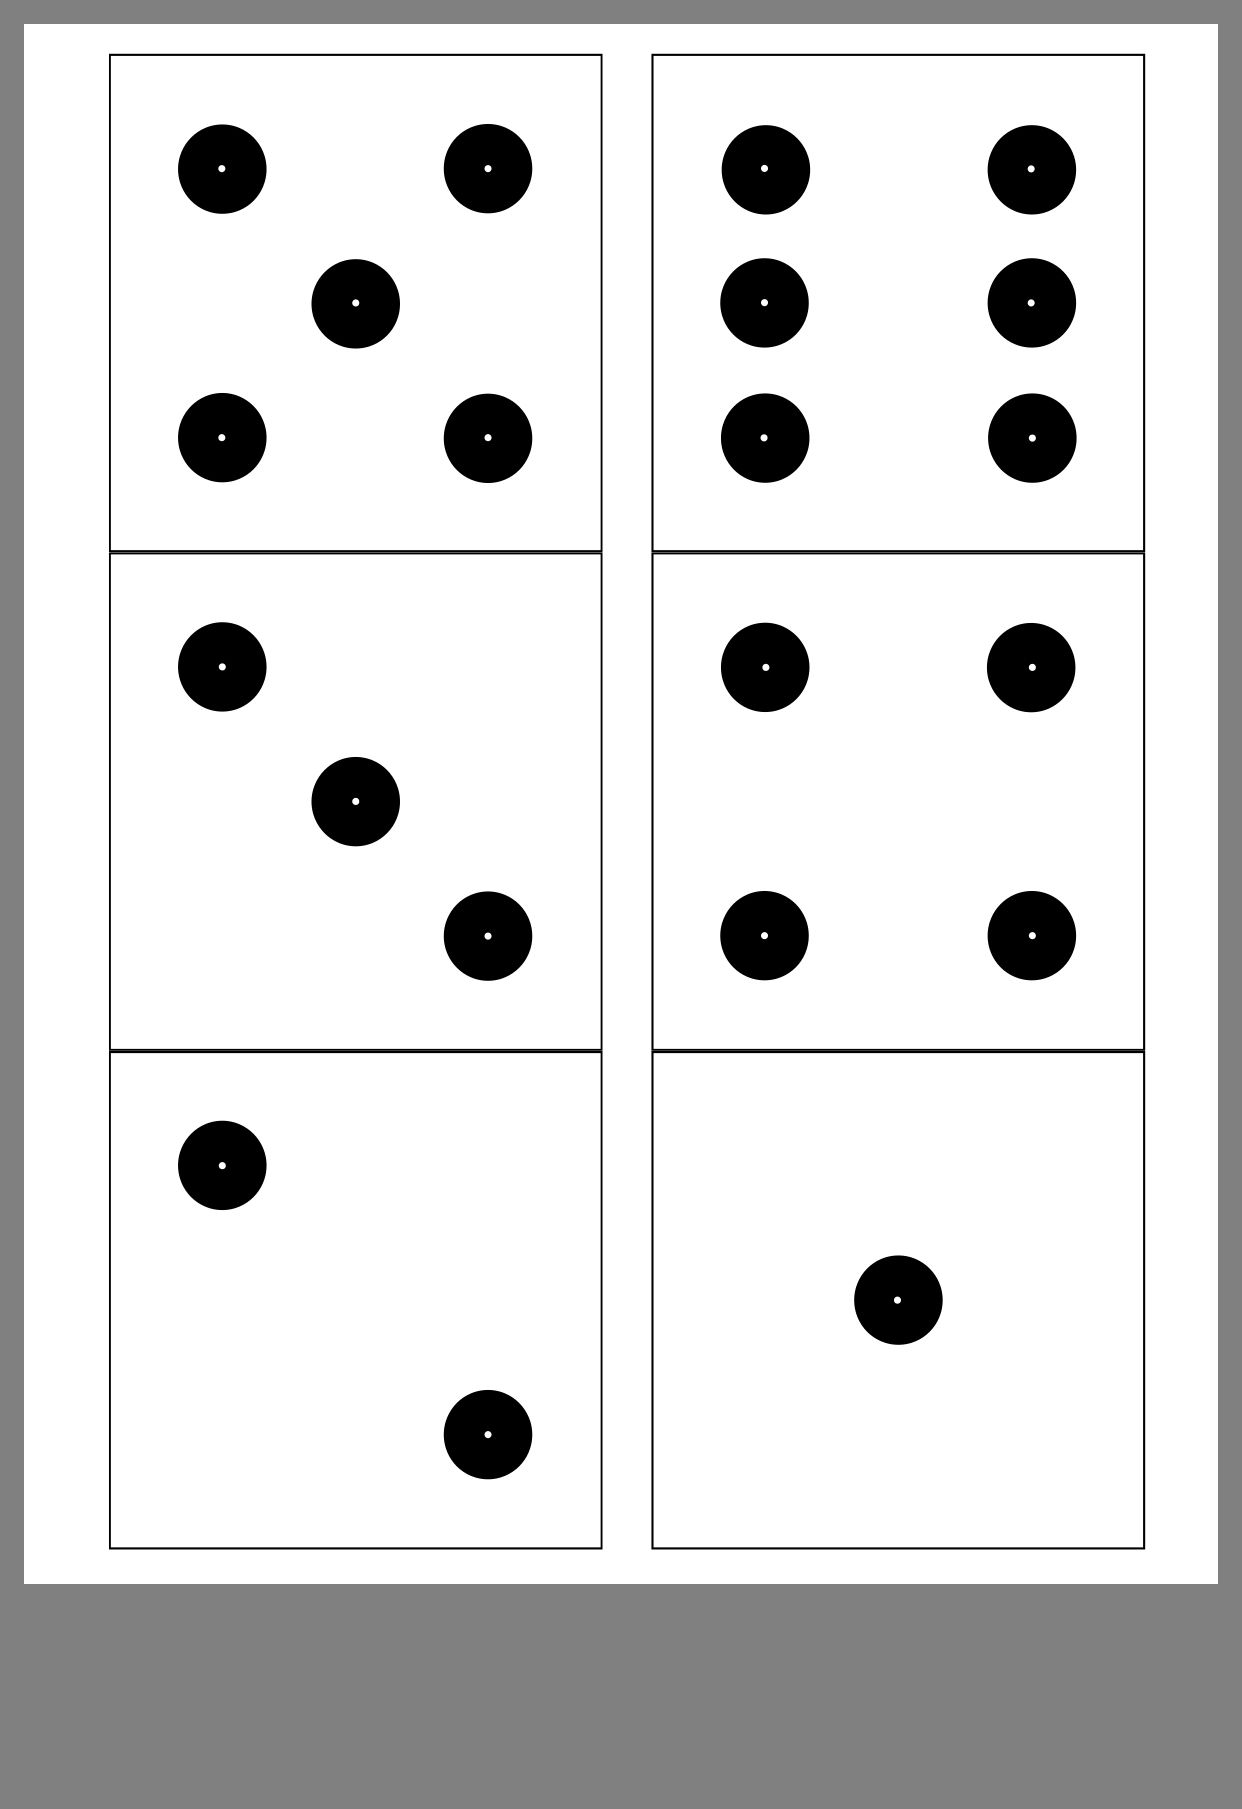 dice template pin by susan call on christmas ideas dice template dice template